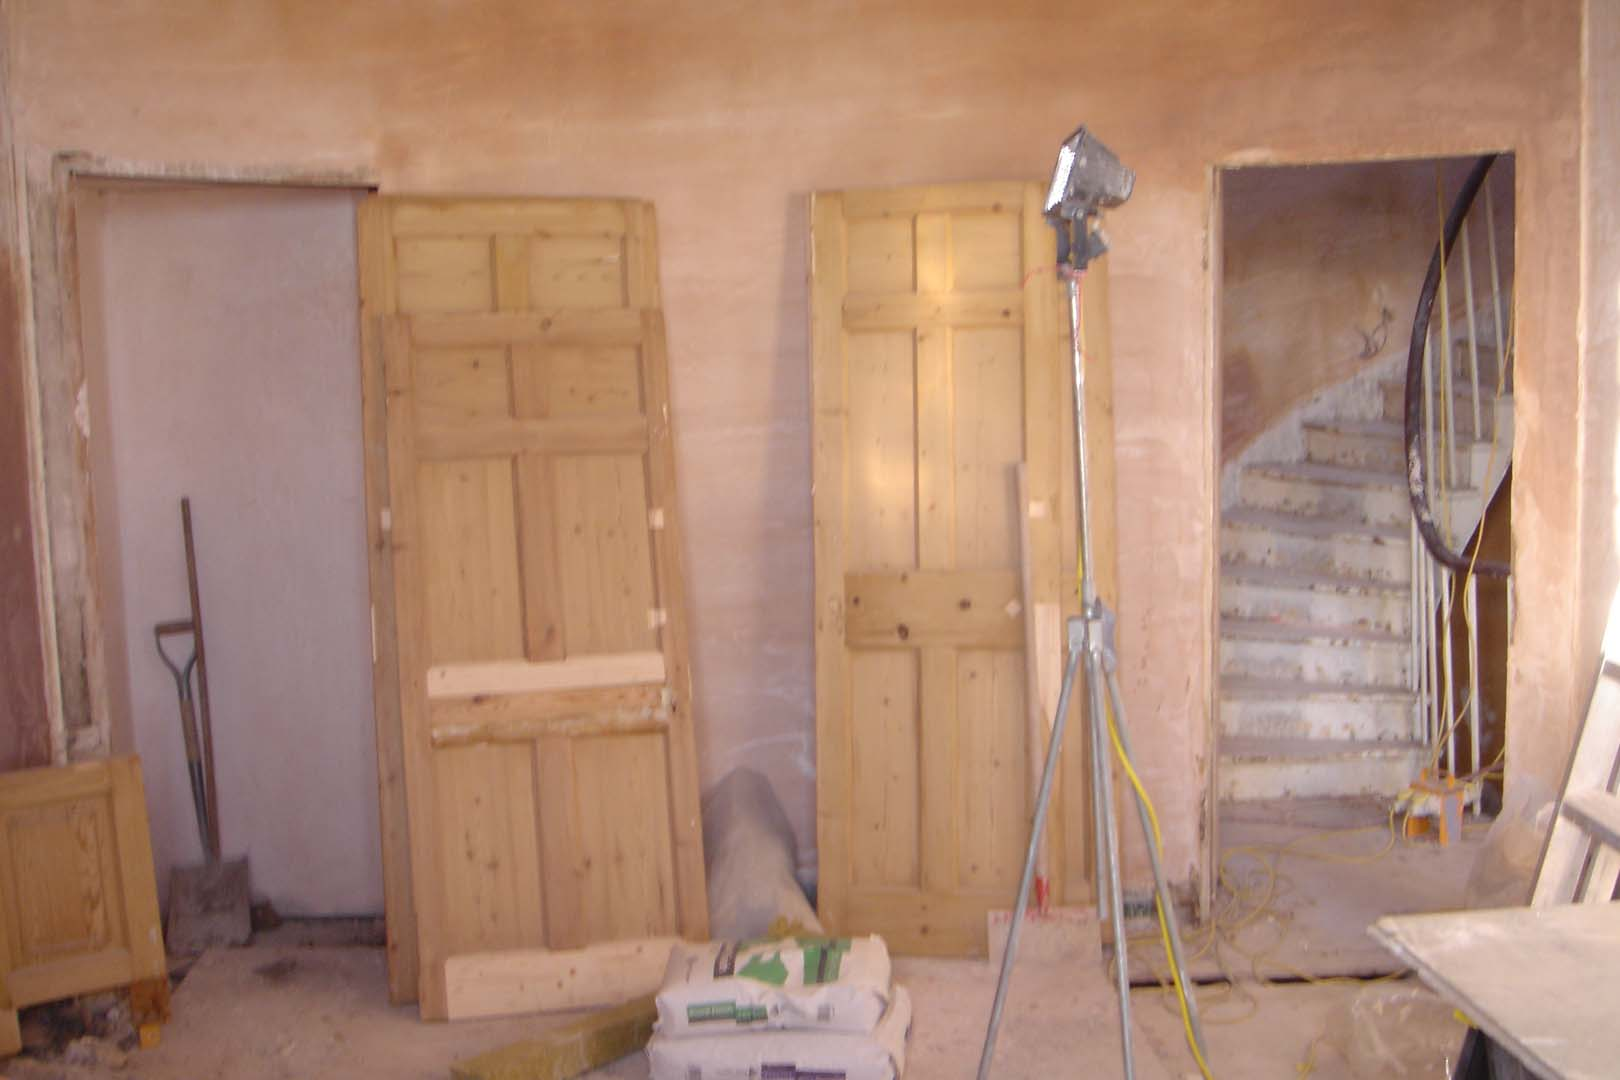 Georgian House image of doors in the room before restoration